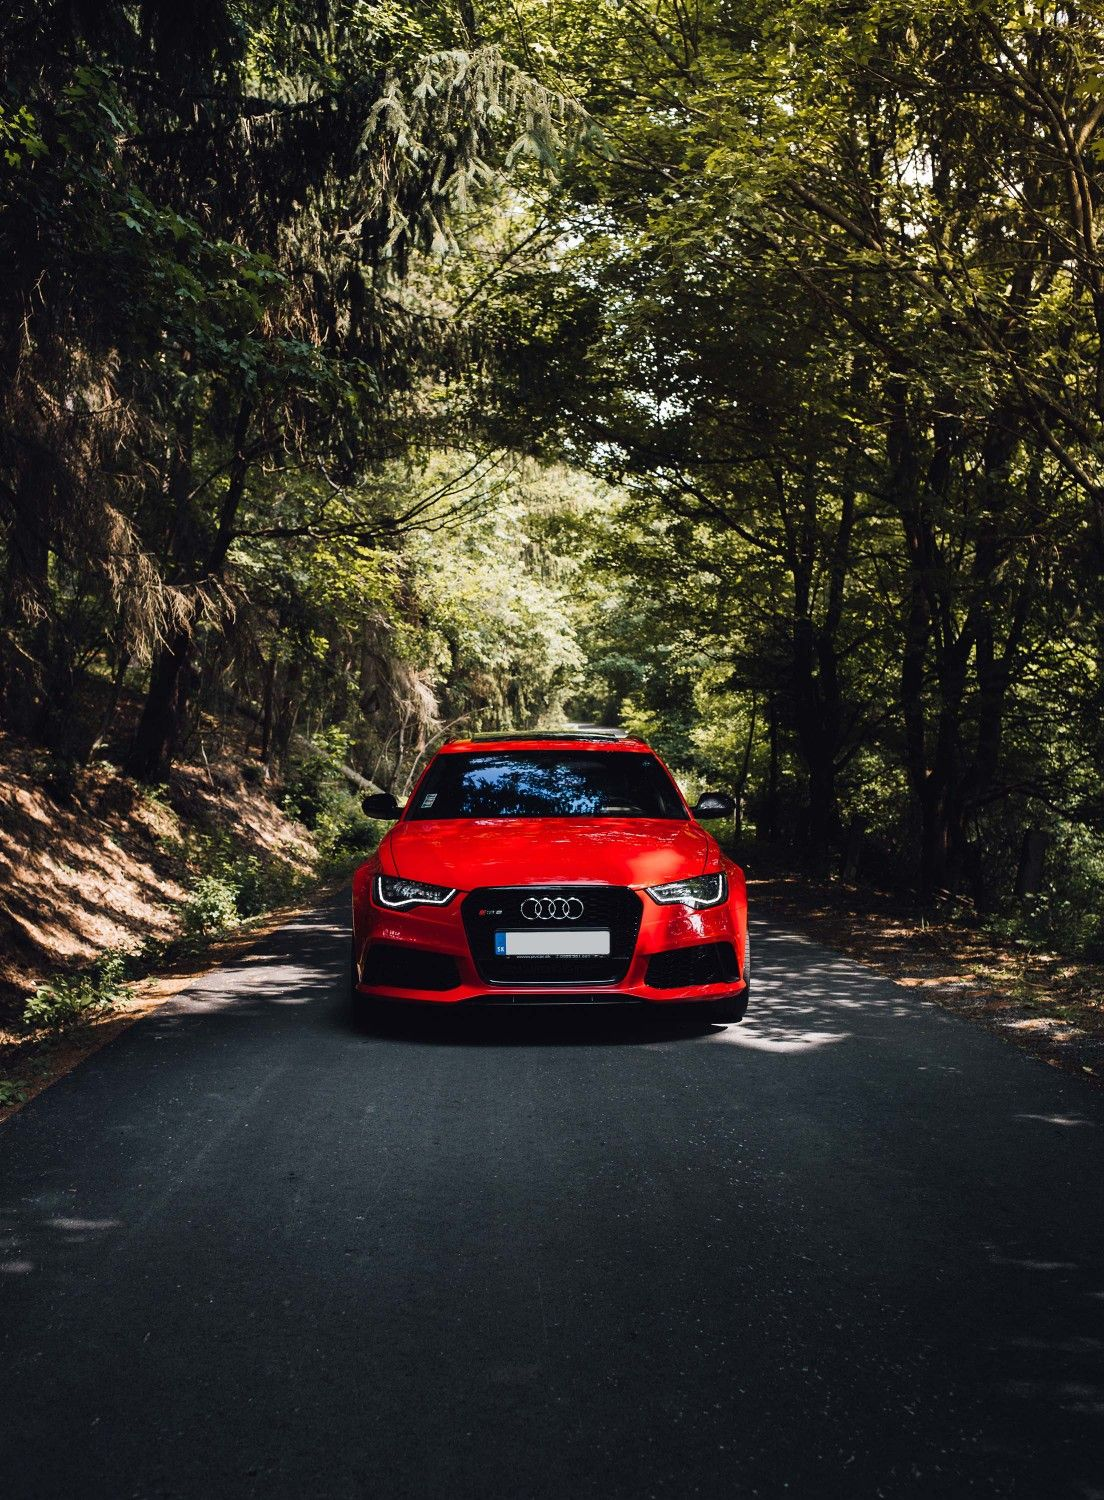 Red - Audi Car In Forest , HD Wallpaper & Backgrounds